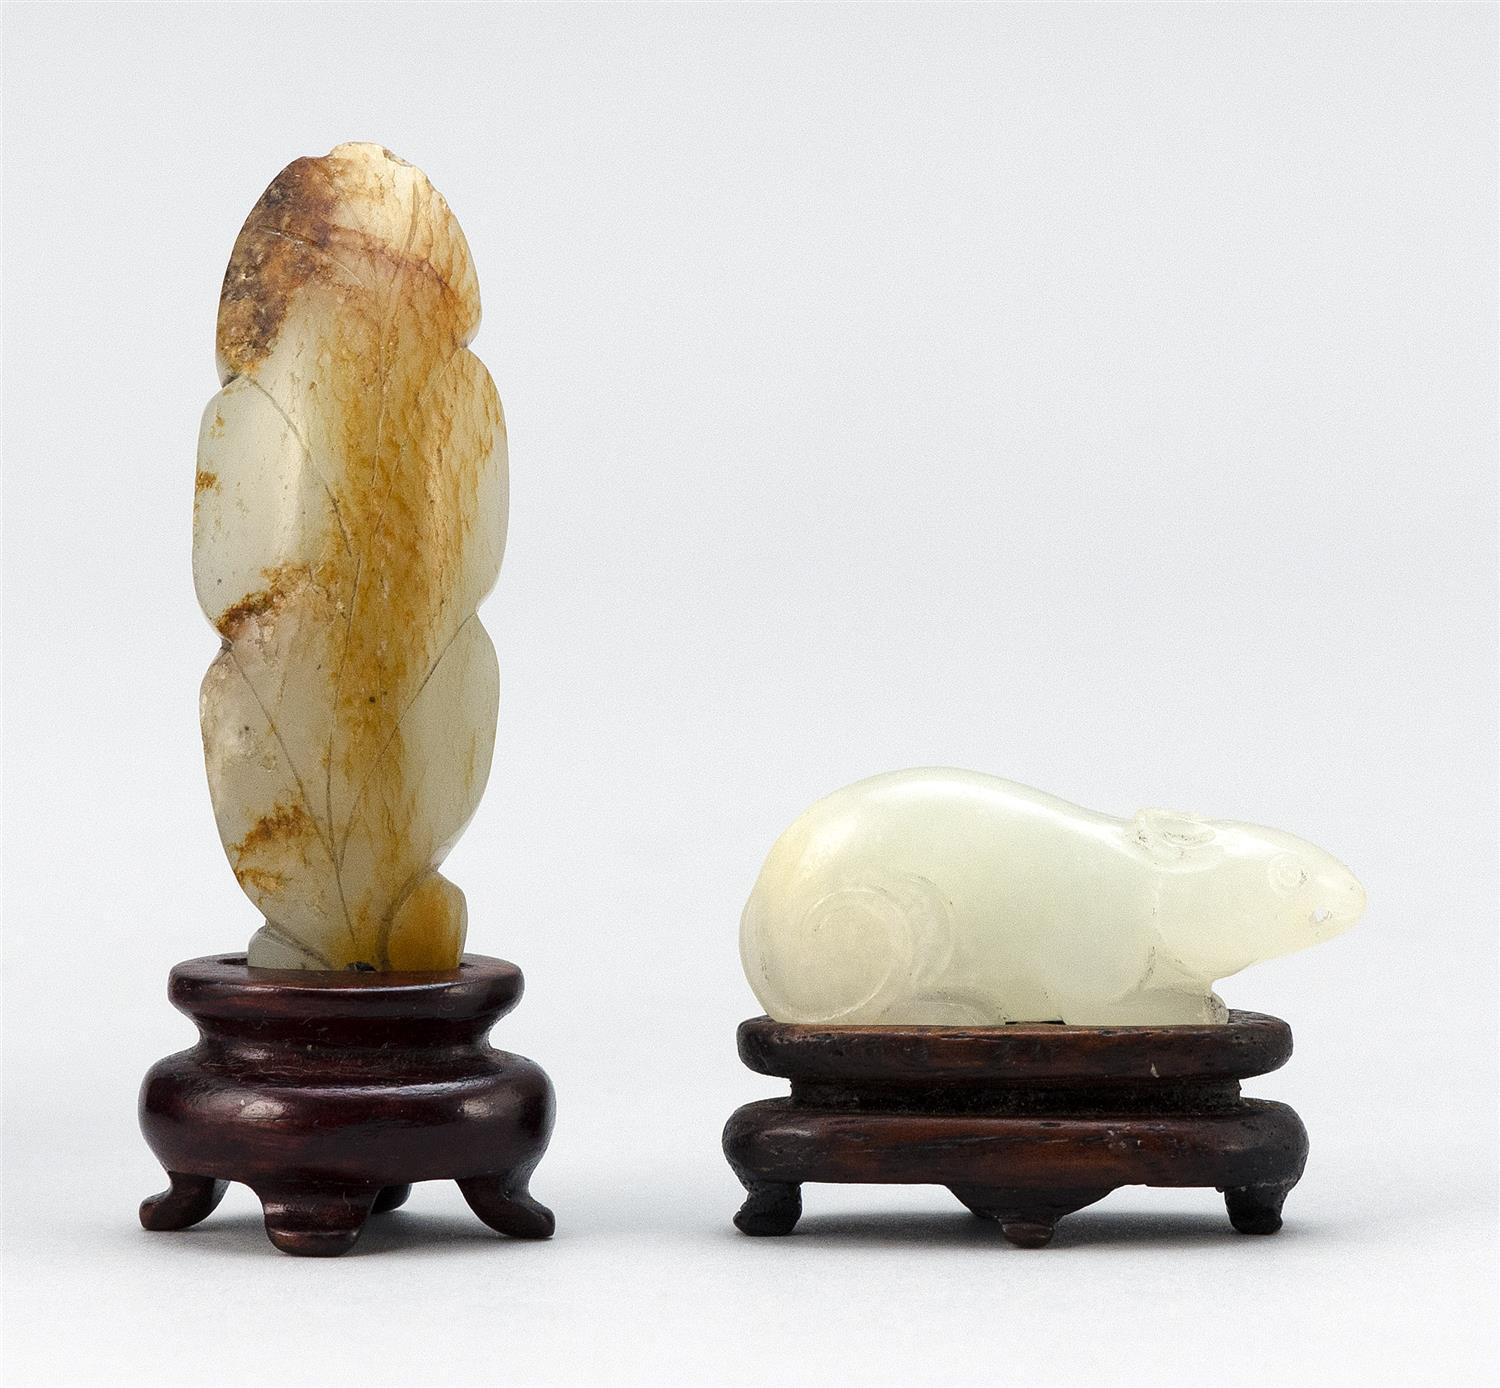 """TWO CHINESE NEPHRITE JADE TOGGLES One in the form of a peapod with russet skin tones, length 2.5"""", and one in the form of a mouse, l..."""